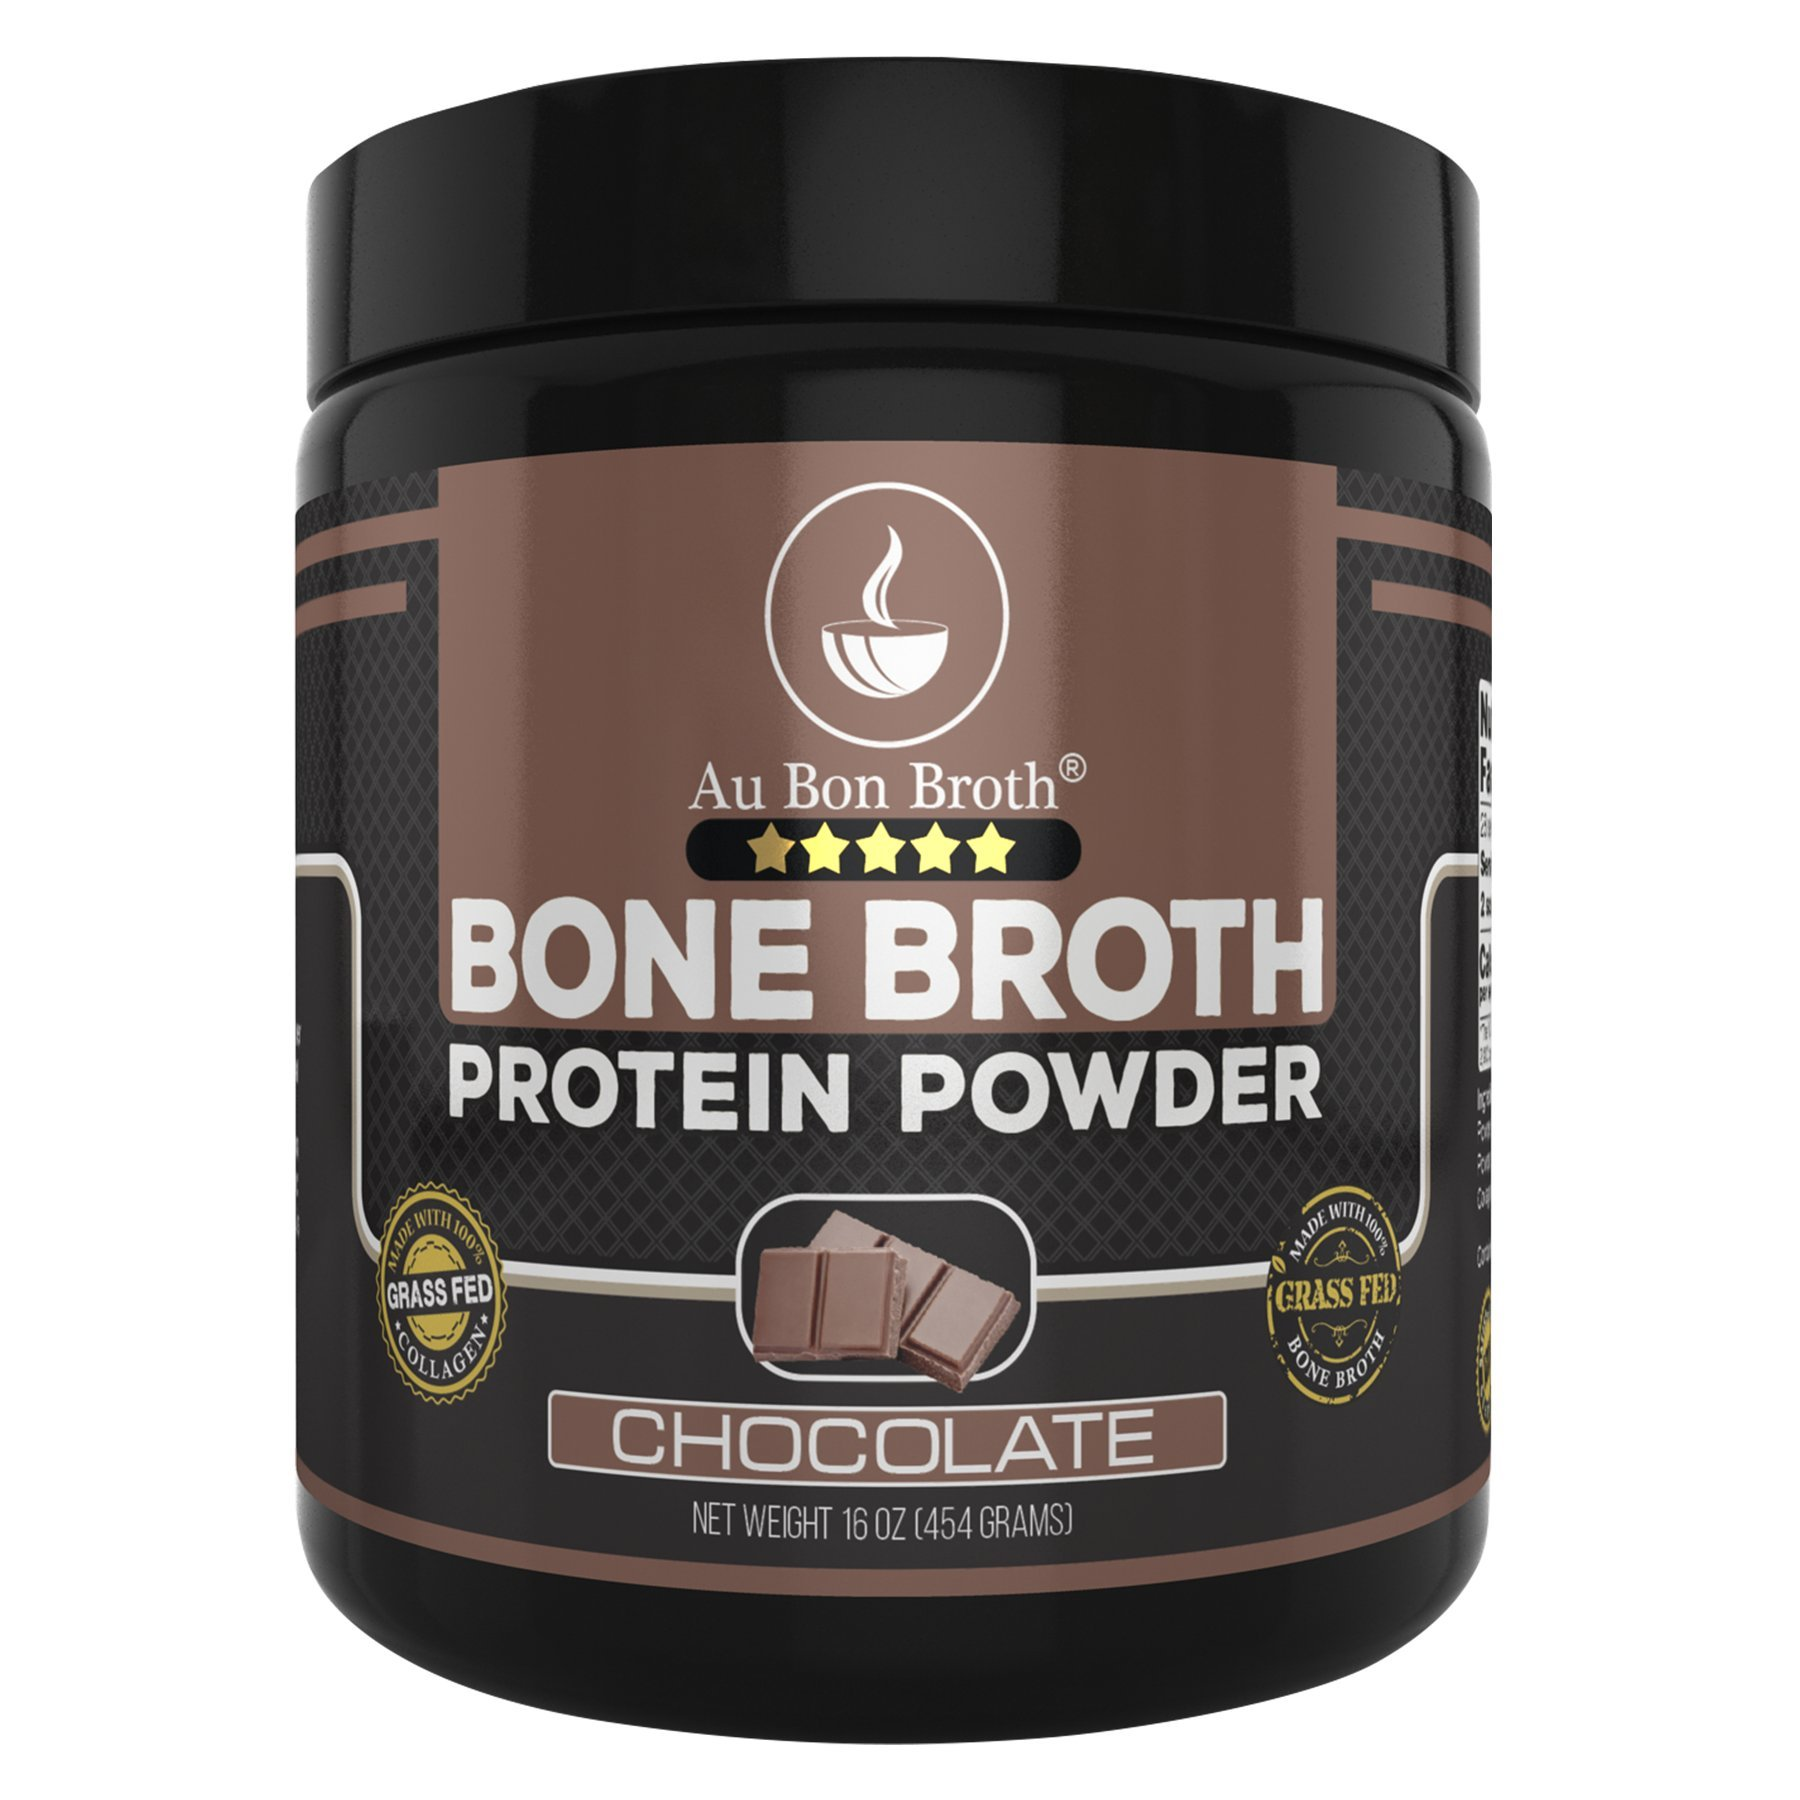 Genuine Grass Fed Organic Bone Broth Protein Powder Collagen 16oz. Chocolate Flavor 28 Servings, Mixes Instantly, Gluten Free, Pasture Raised, 100% Sourced, Made in USA, NOT from Concentrate